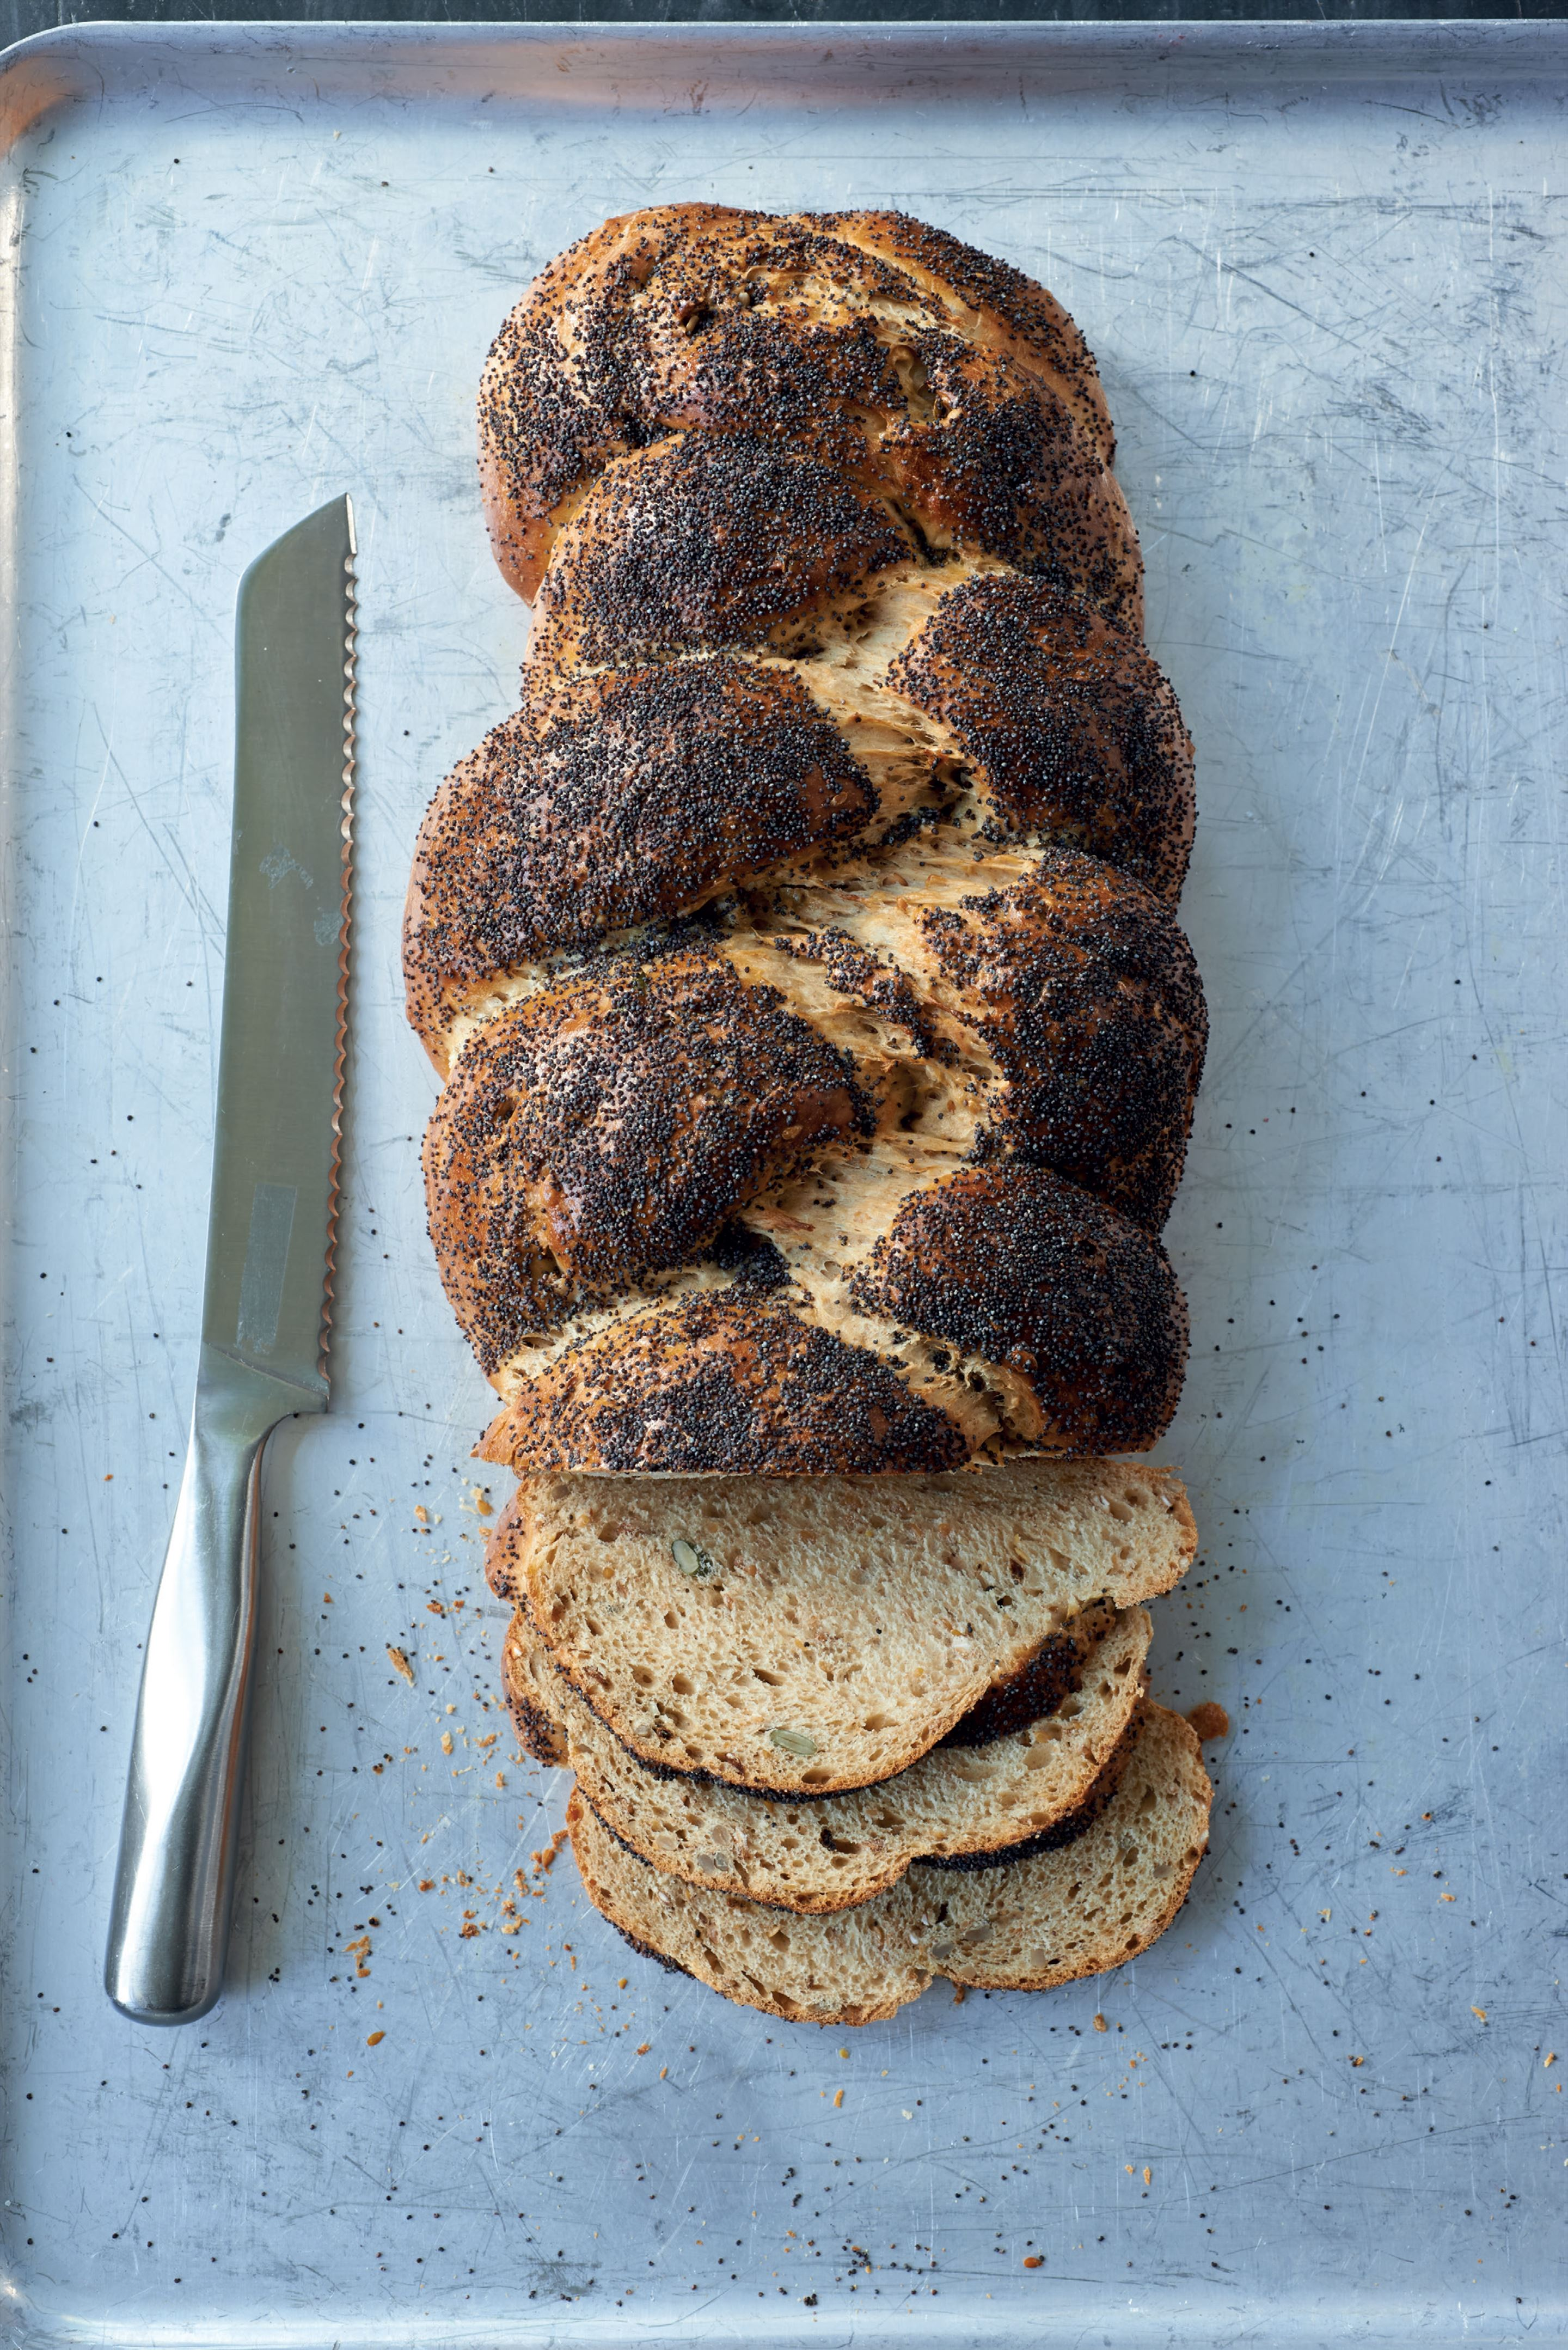 Crunchy seeded granary plait